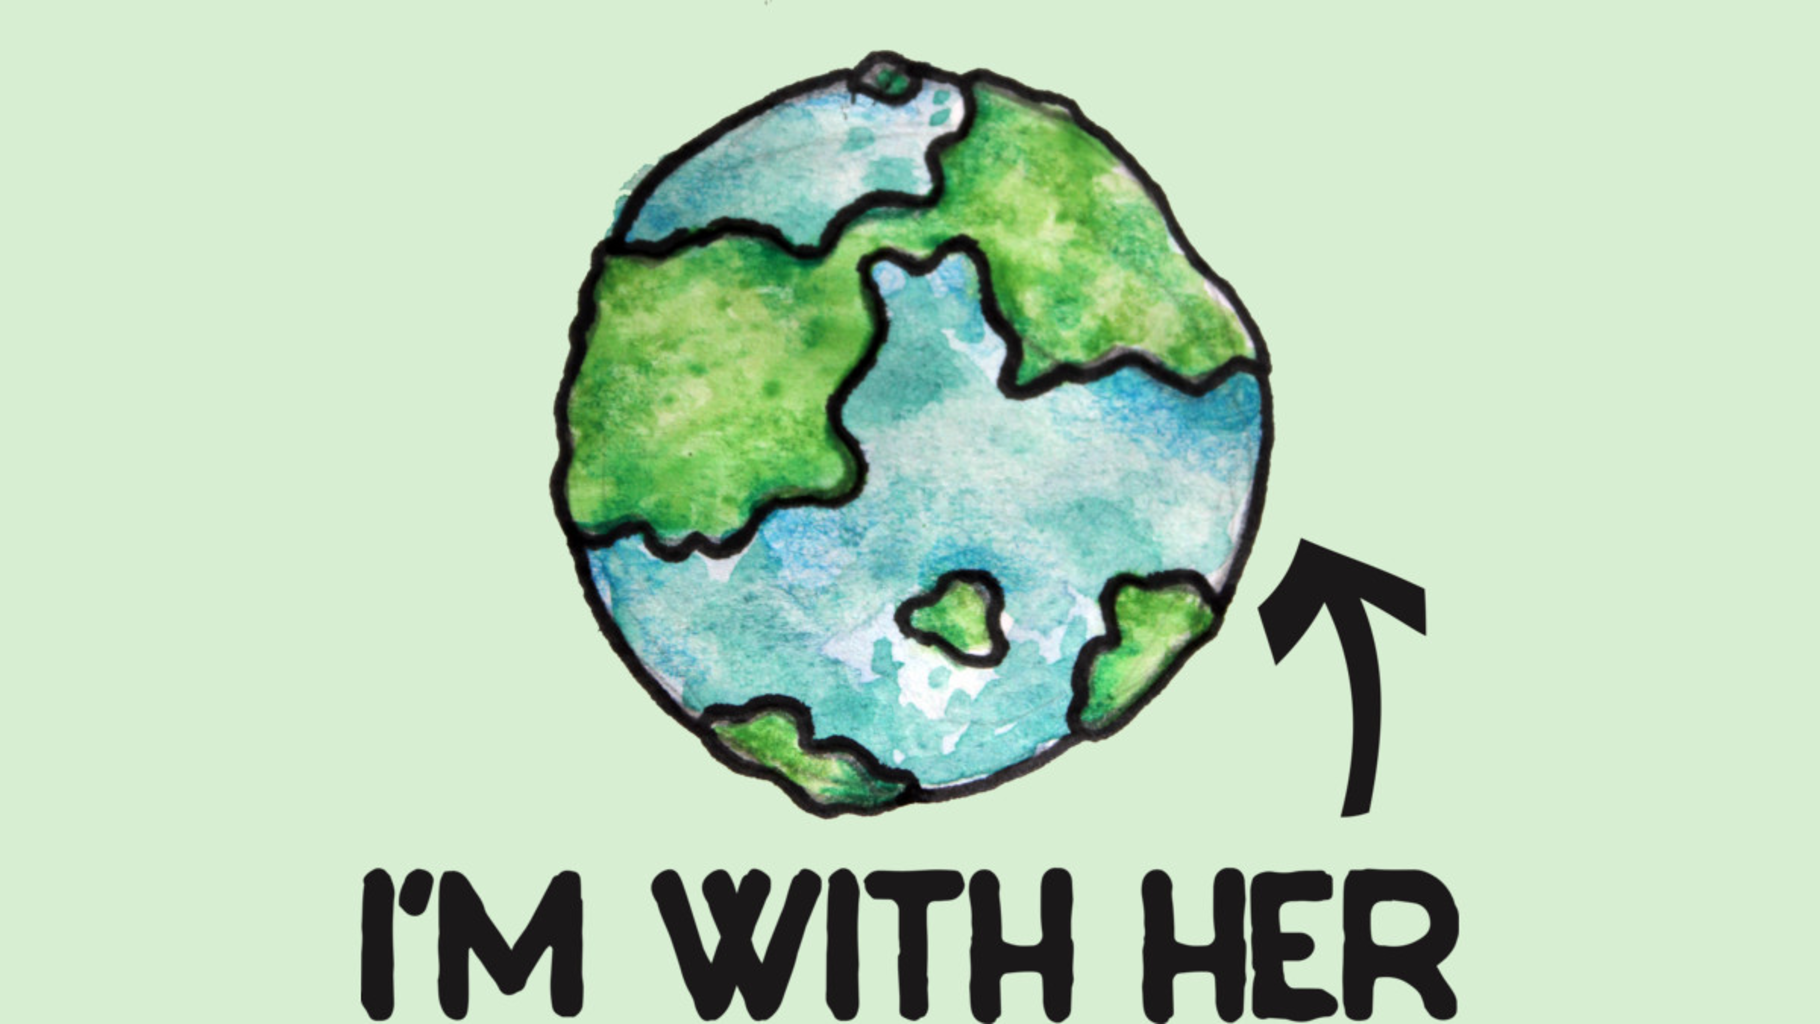 Design by Humans: I'm with her earth day